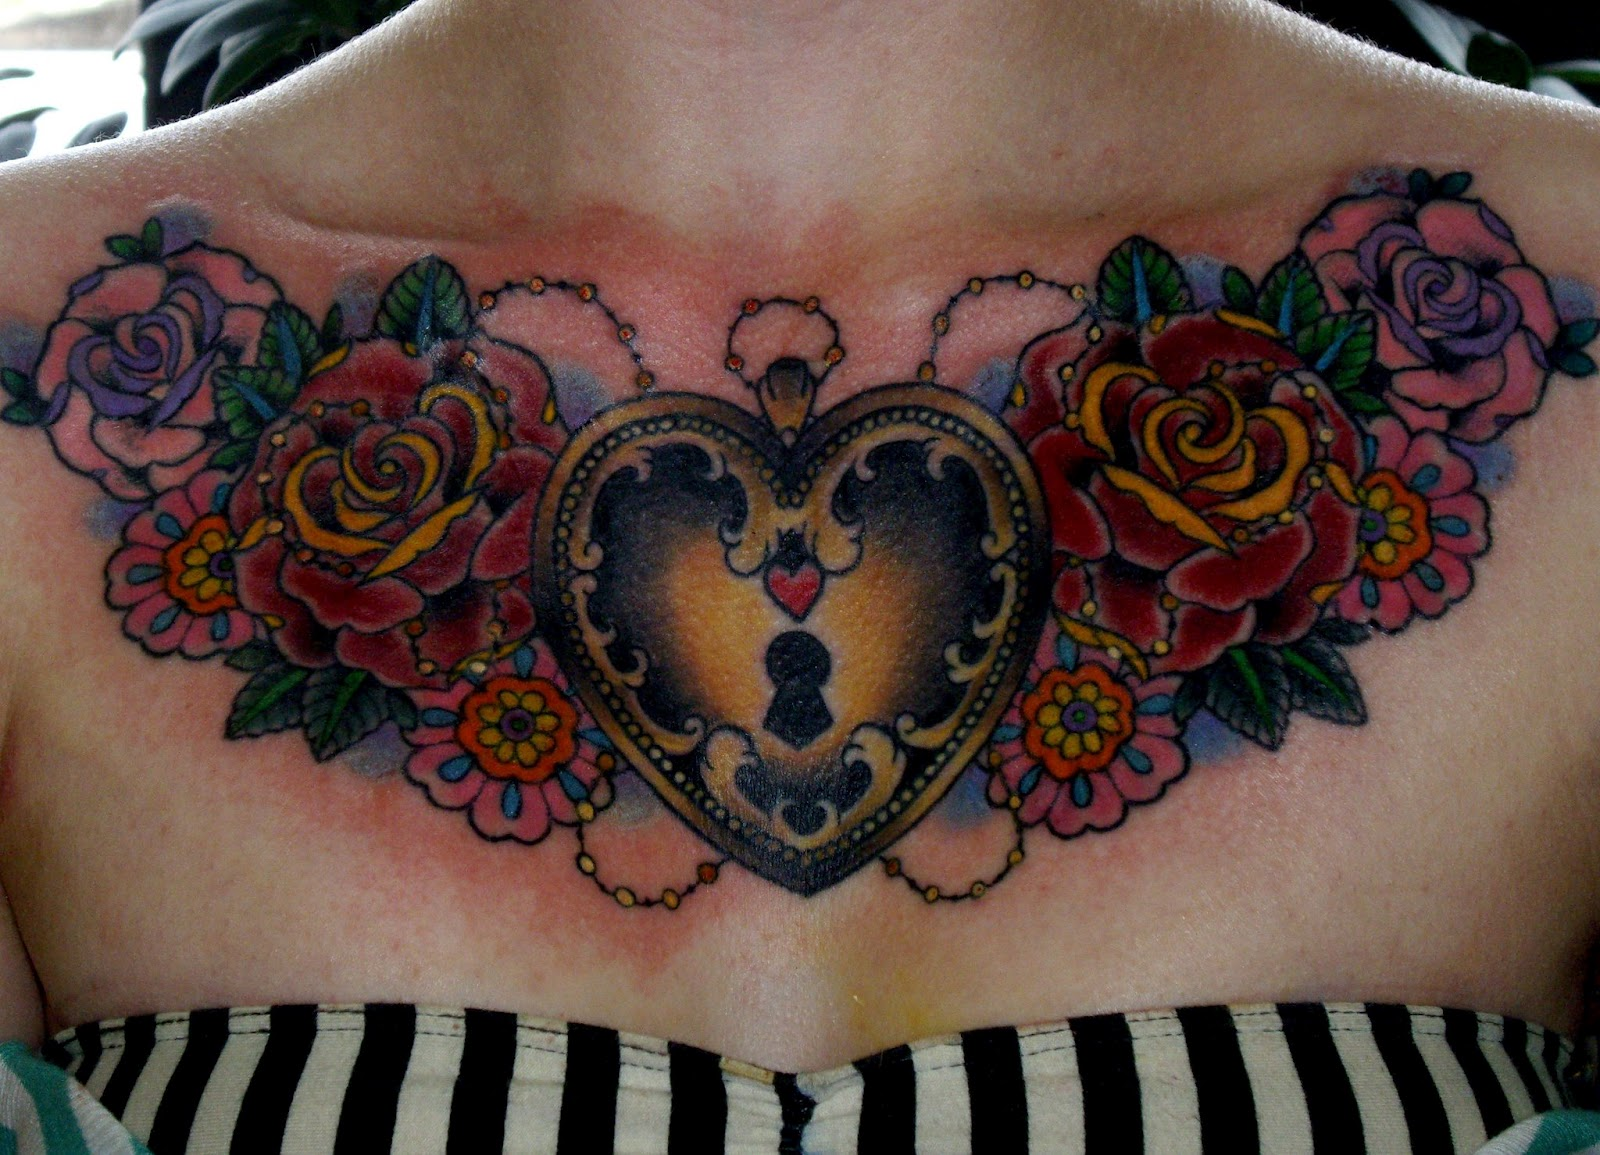 Chest Pieces Tattoo: Sometimes Sweet: Tattoo Tuesday V.109